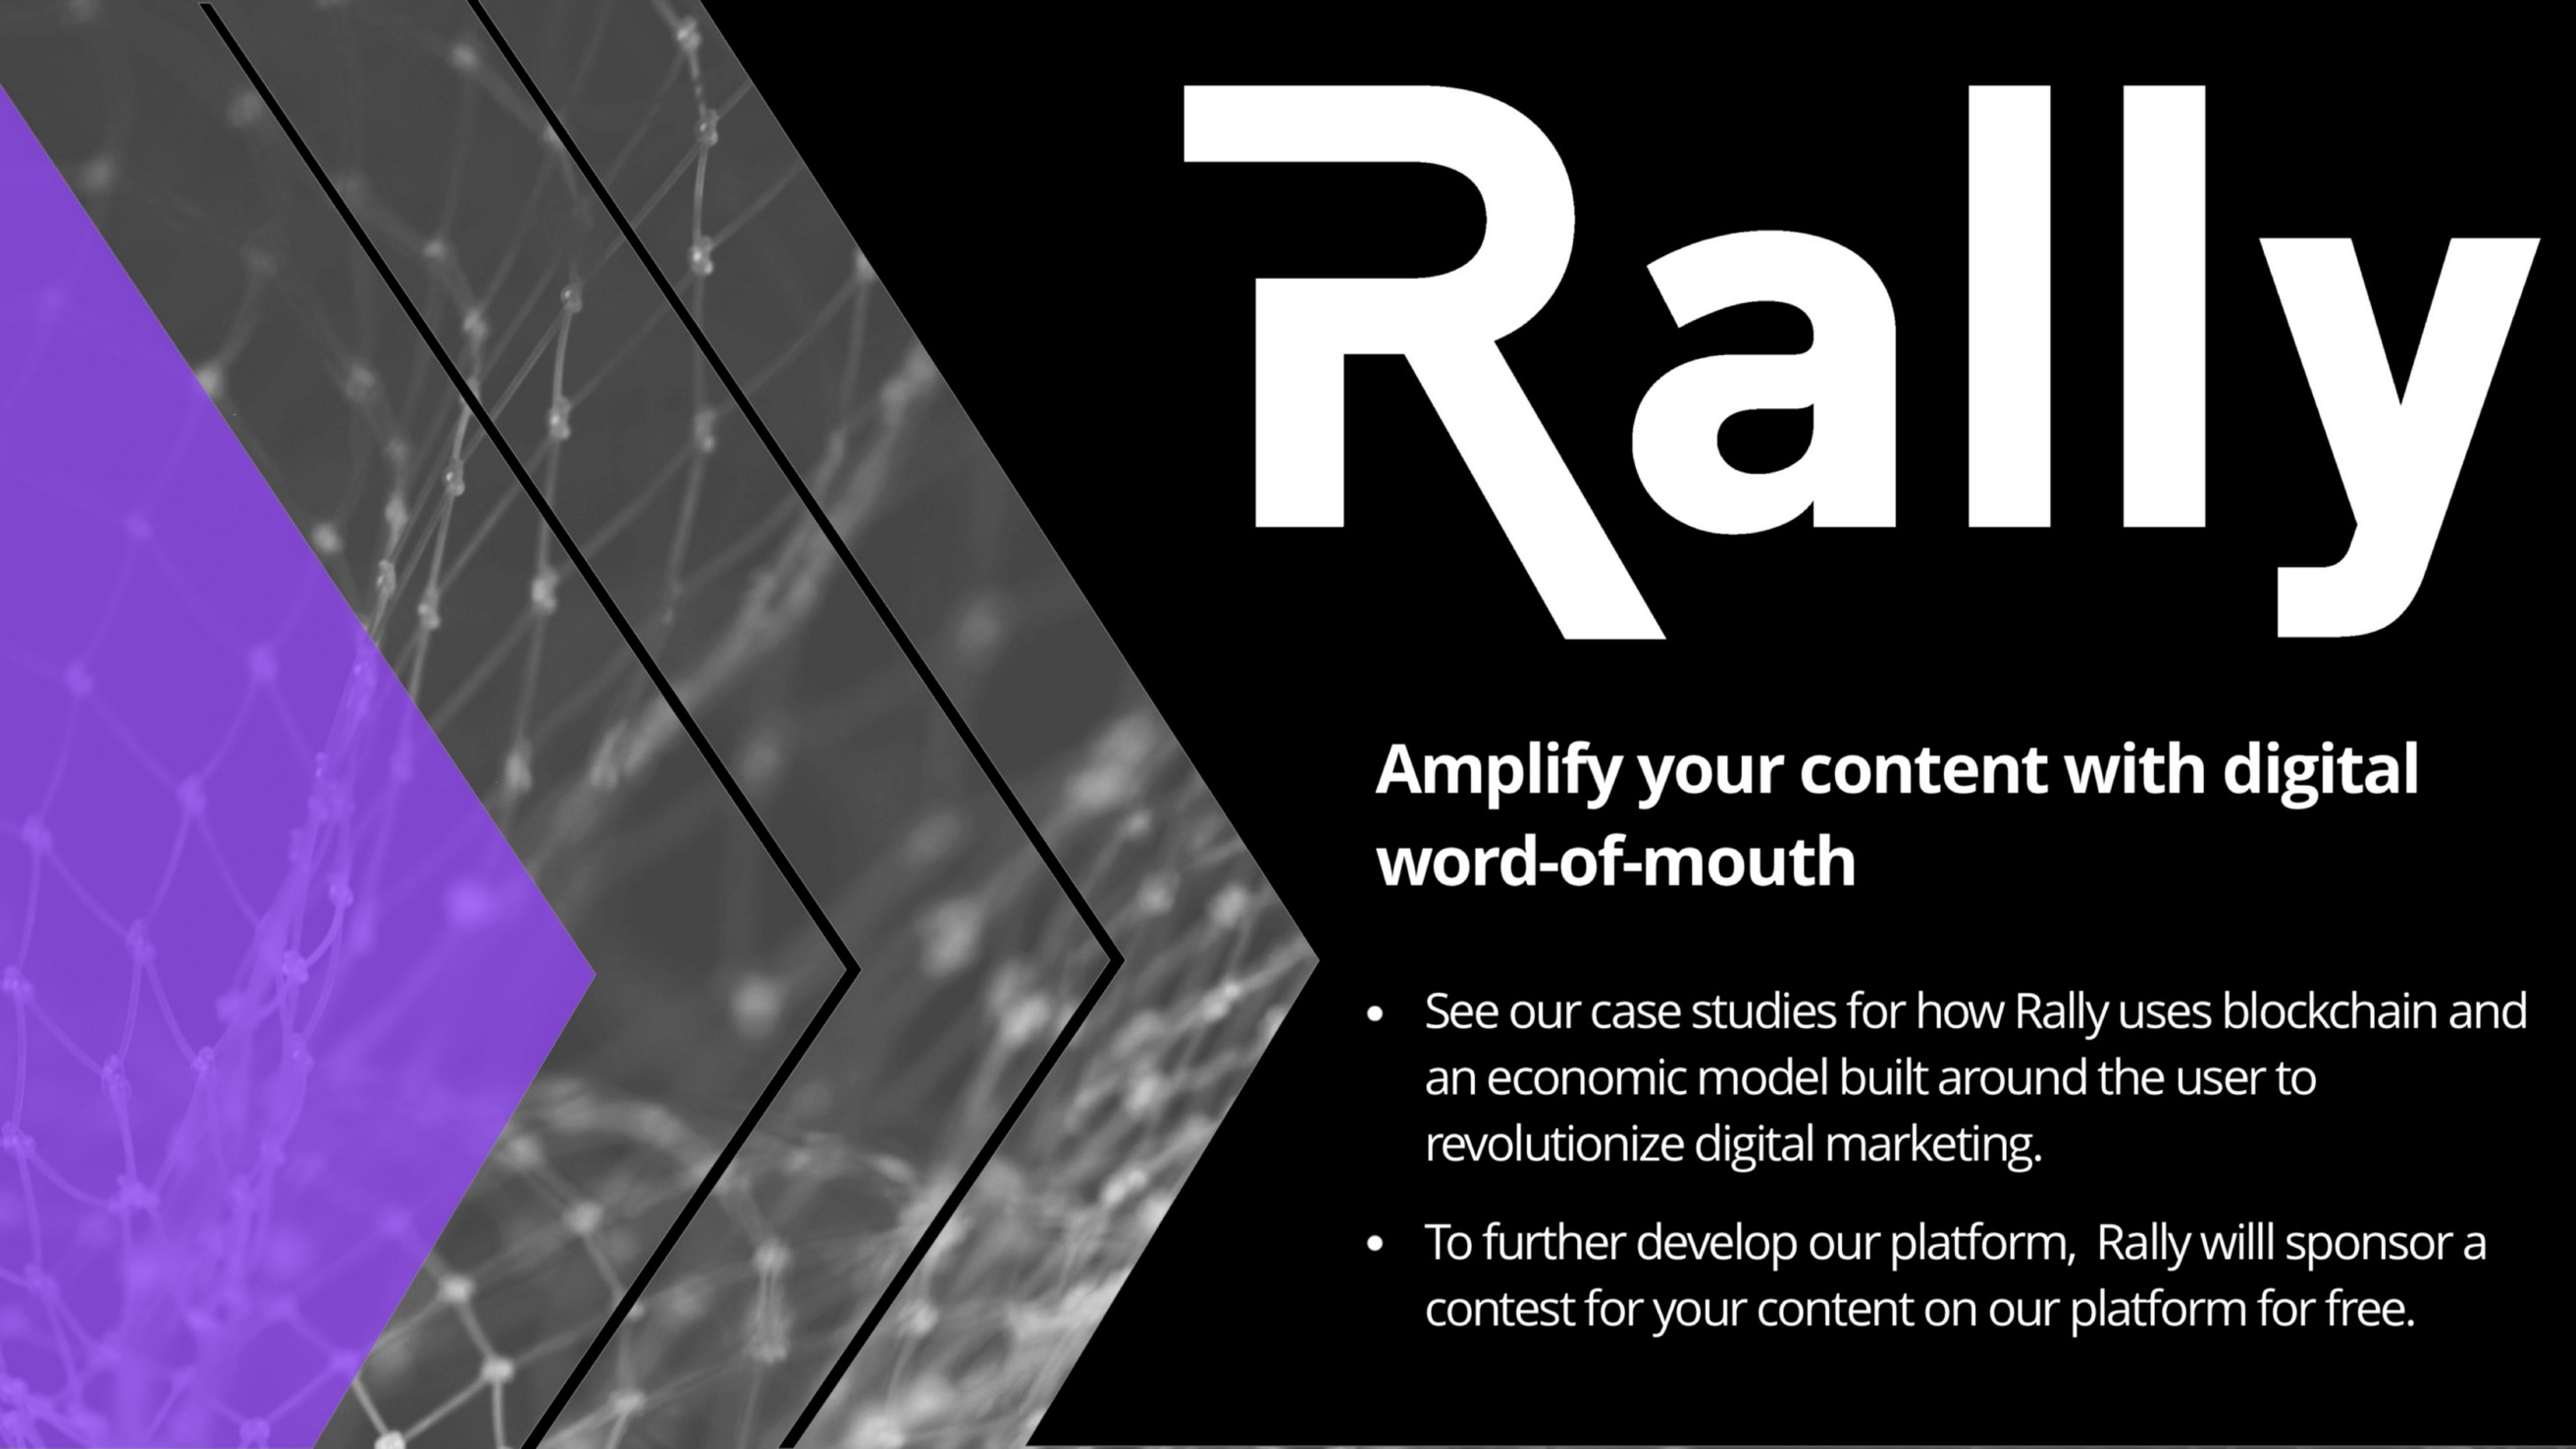 See our case studies for how Rally uses blockchain and an economic